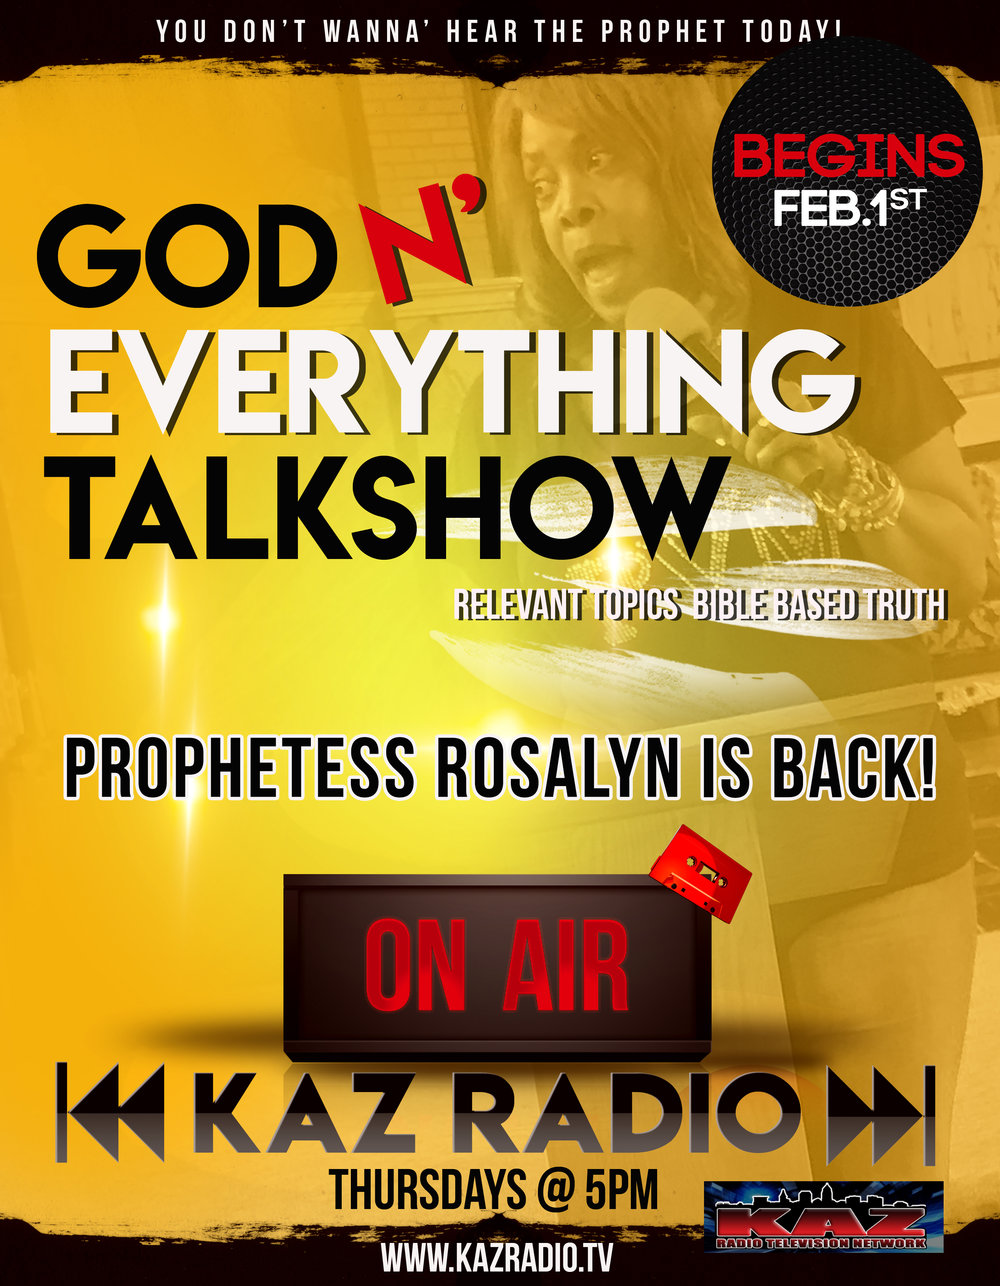 Prophetess Rosalyn is BACK ON AIR - For years Prophetess Rosalyn has blessed the airwaves with her power pact word from the Lord weekly. God moved her into the ministry of marriage with her wonderful husband Keith Atkinson and she put down the mic for a brief season of transition. BUT NOW SHE IS BACKProphetess Rosalyn has joined forces with Cleveland's own KAZ RADIO who impacts thousands around the city. They are here to bring you unfiltered, real and relevant topics. These two powerhouses together will impact your life. Make sure to listen in starting February 1st on Thursdays at 5PM. www.kazradio.tv